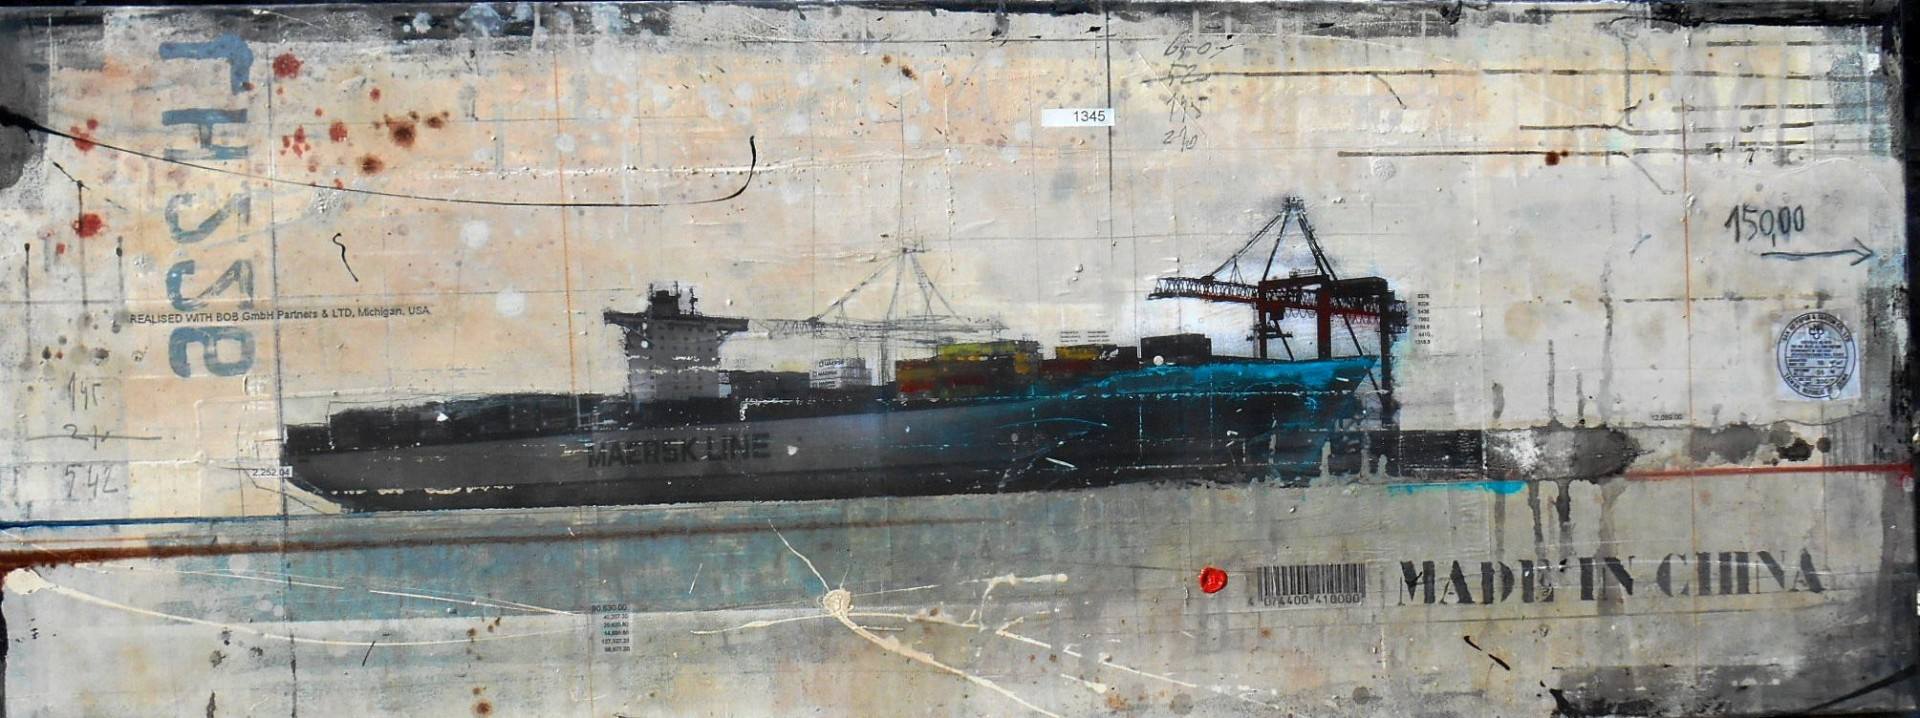 Made in China - collage photo, huile, acrylique sur toile 70 x 180 cm - 2014